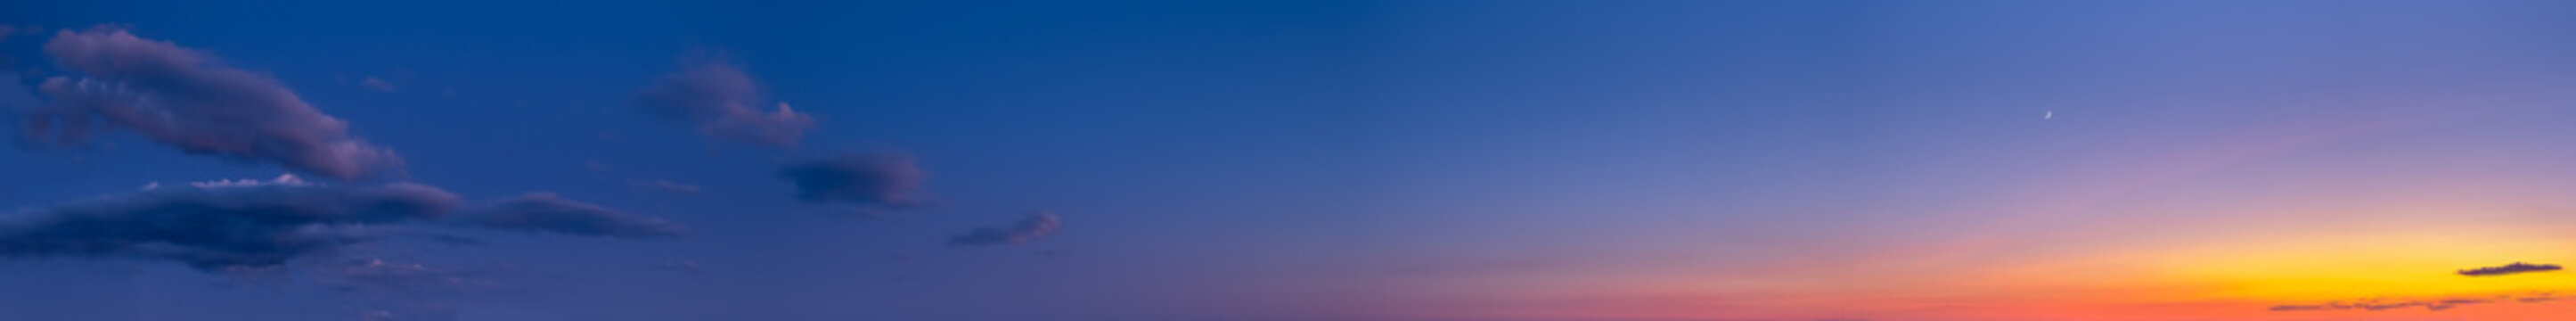 Night after sunset sky with clouds, stars and Moon (wide background panorama).